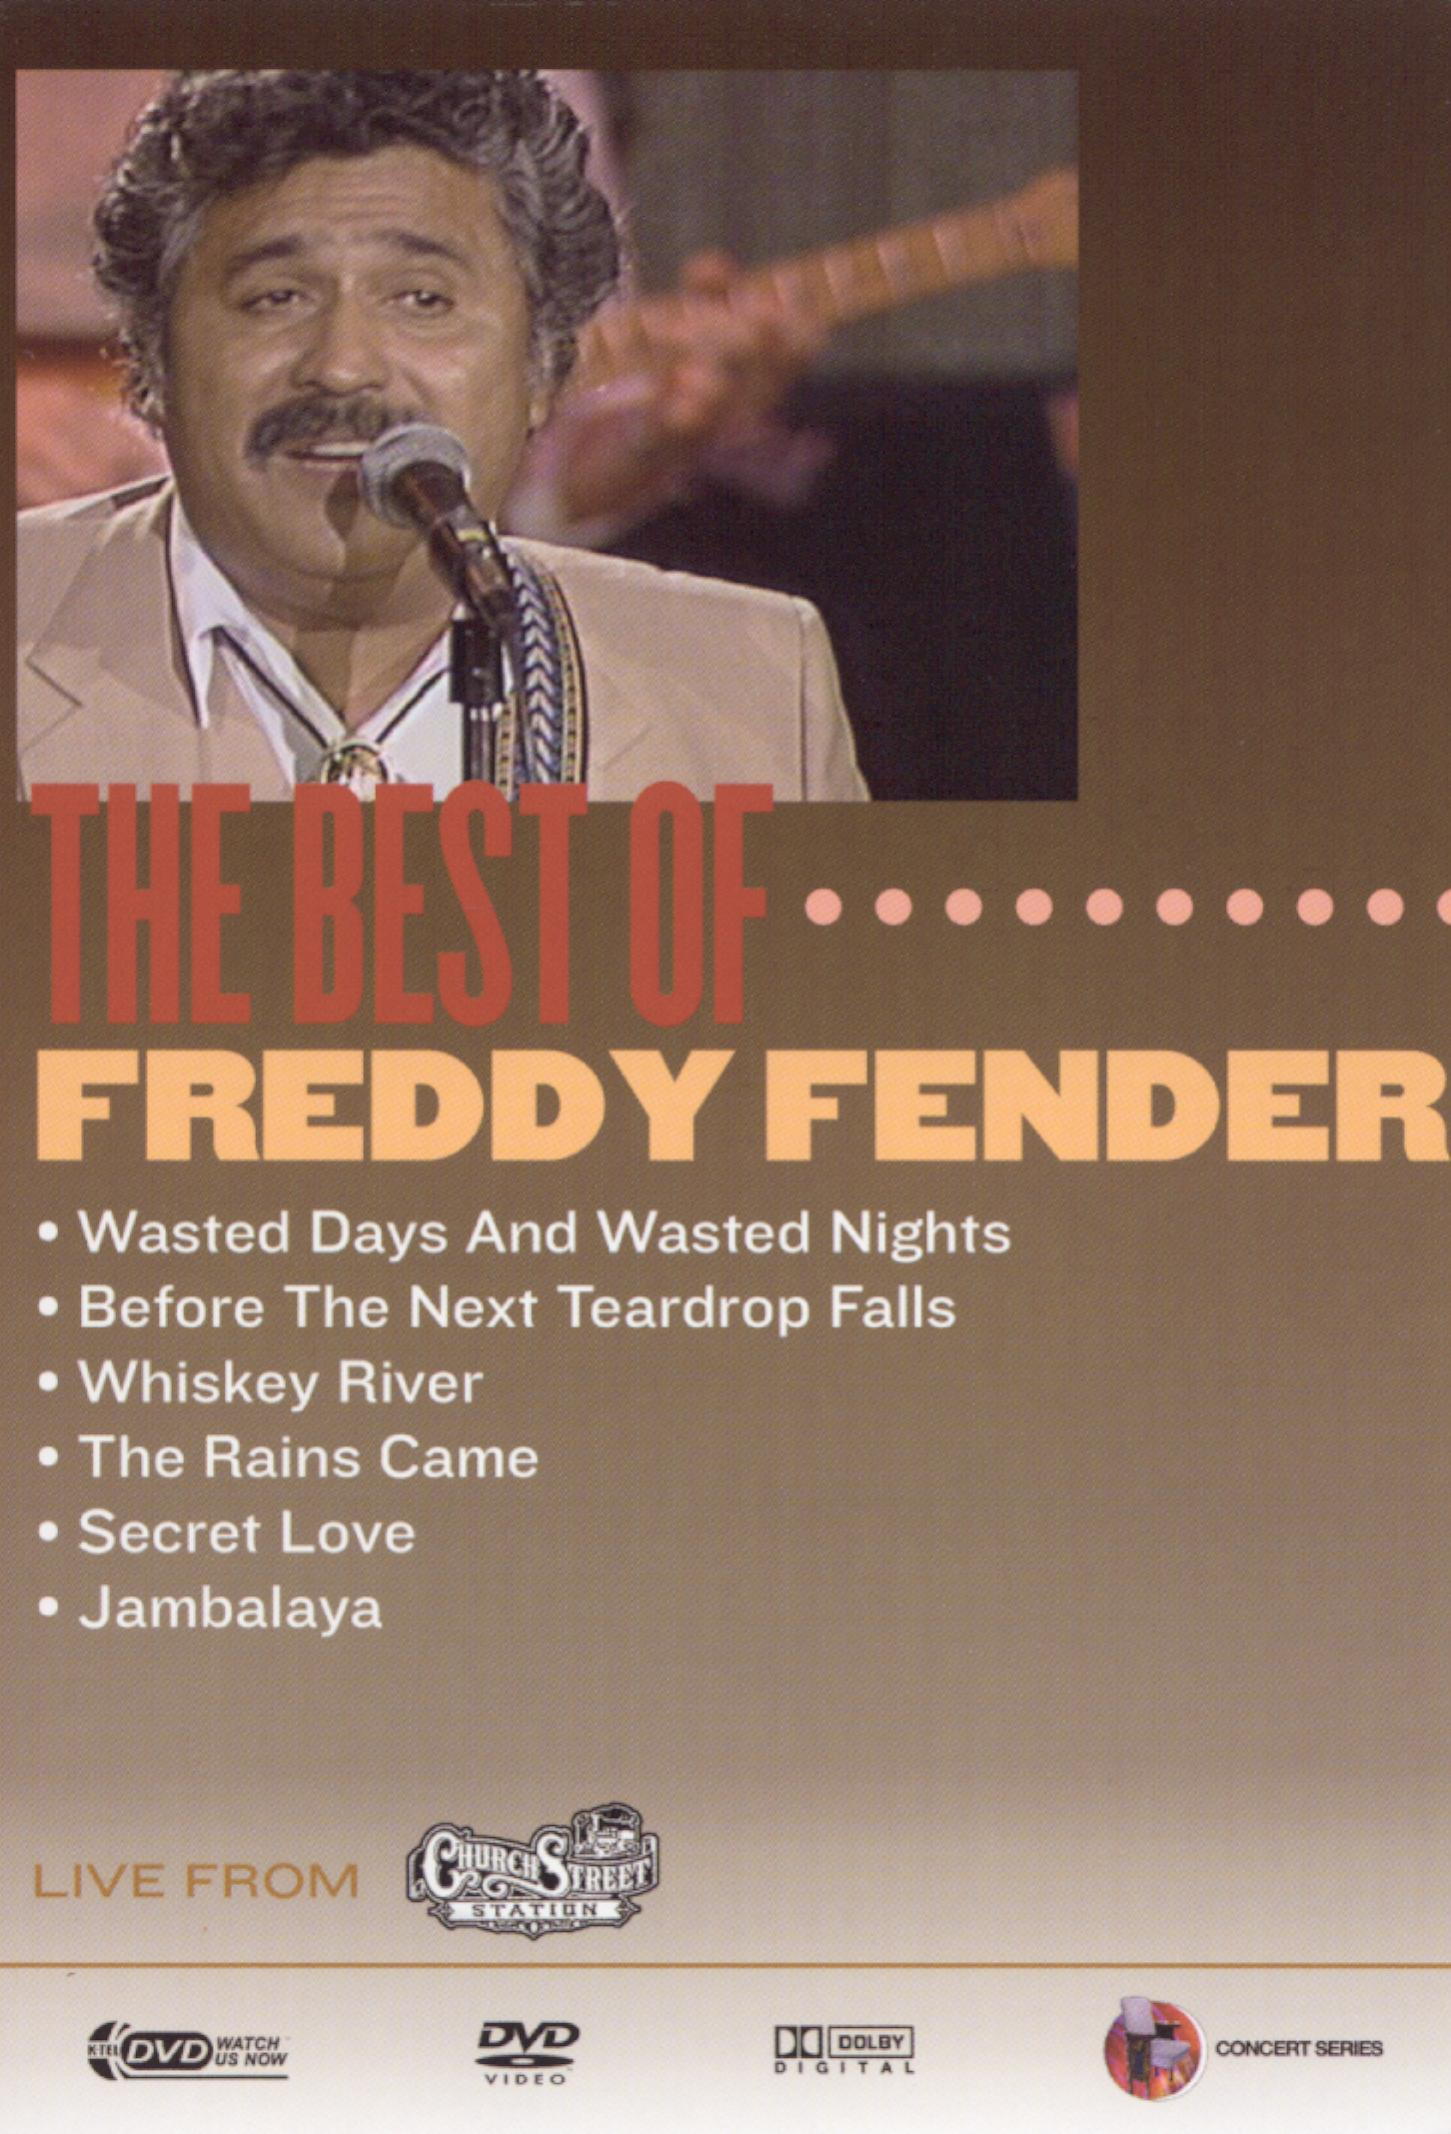 Live From Rock 'n' Roll Palace: The Best of Freddy Fender